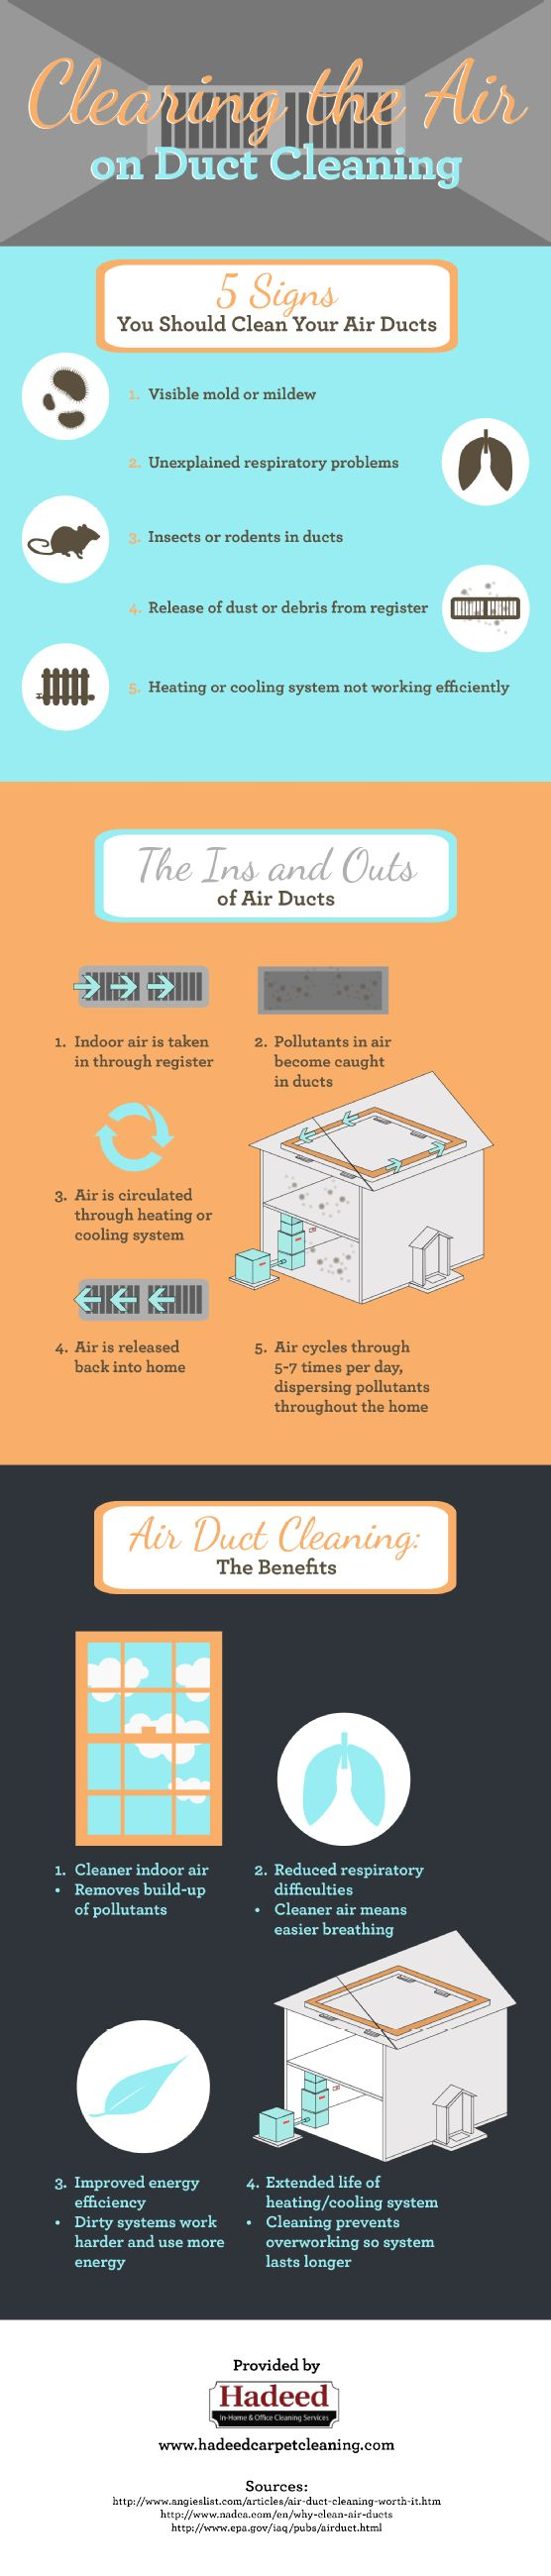 5 Signs You Should Clean Your Air Ducts - LandlordStation.com